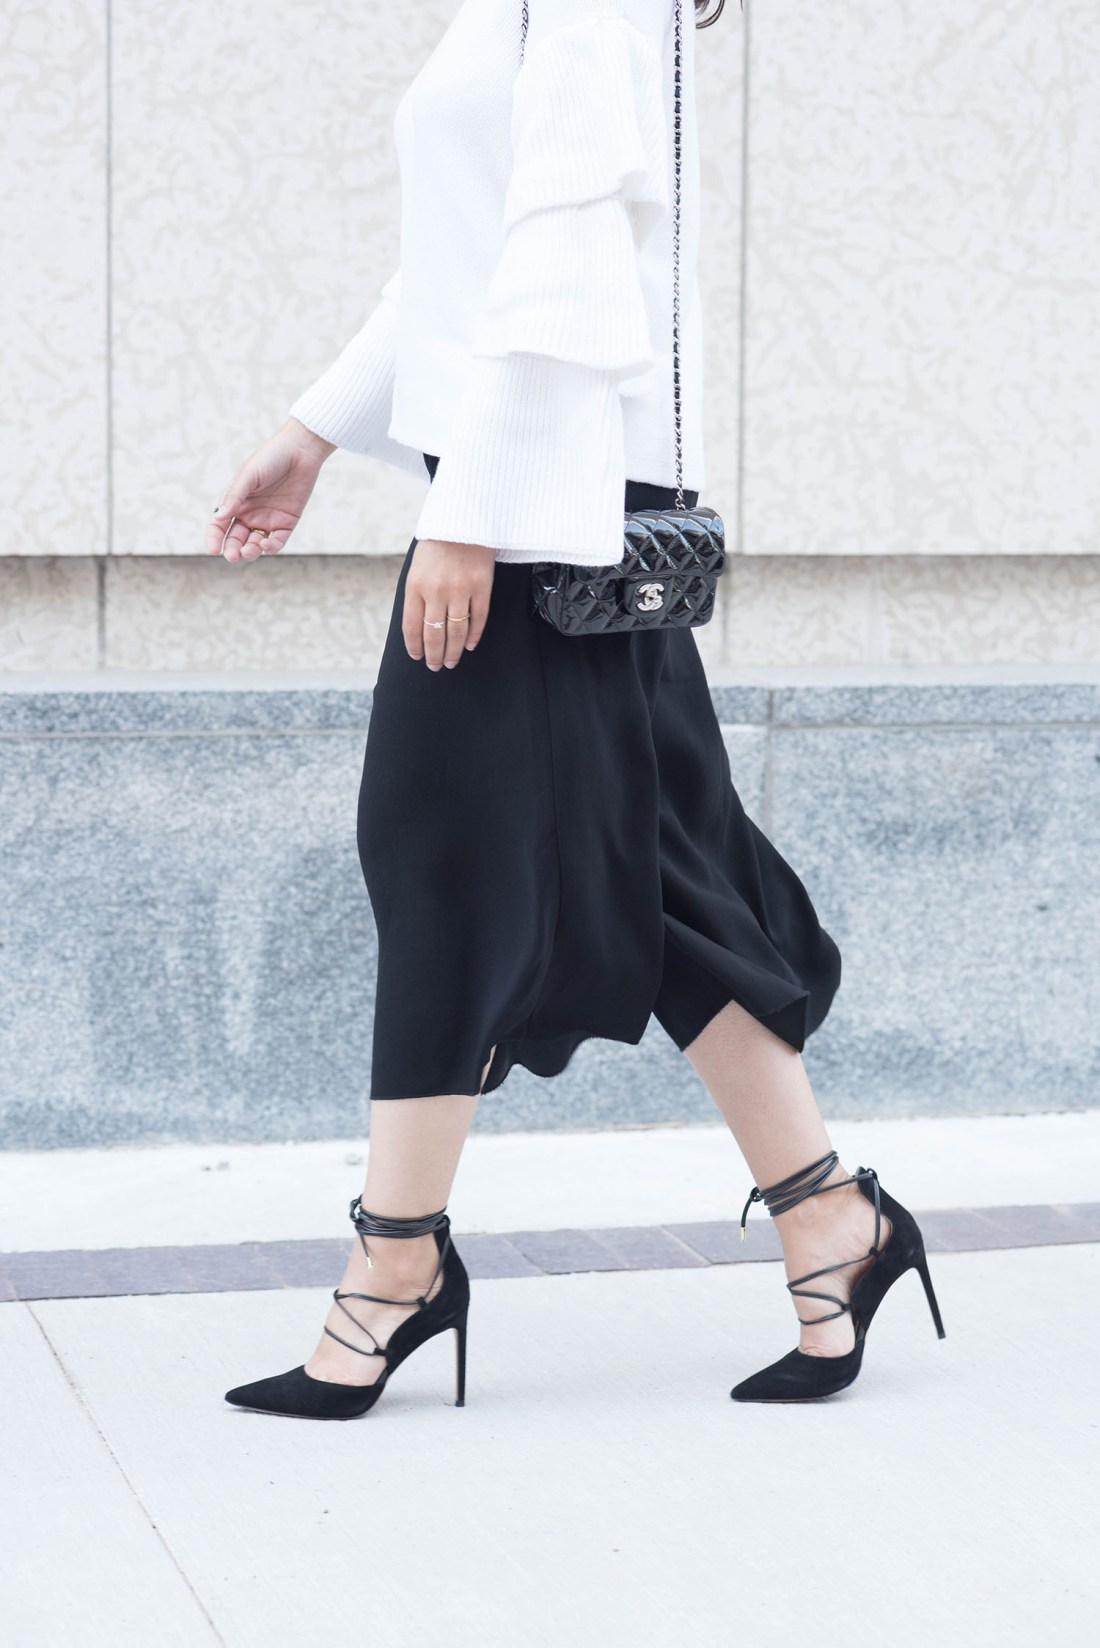 Outfit details on fashion blogger Cee Fardoe of Coco & Vera, including Aritzia culottes and Chanel Timeless handbag